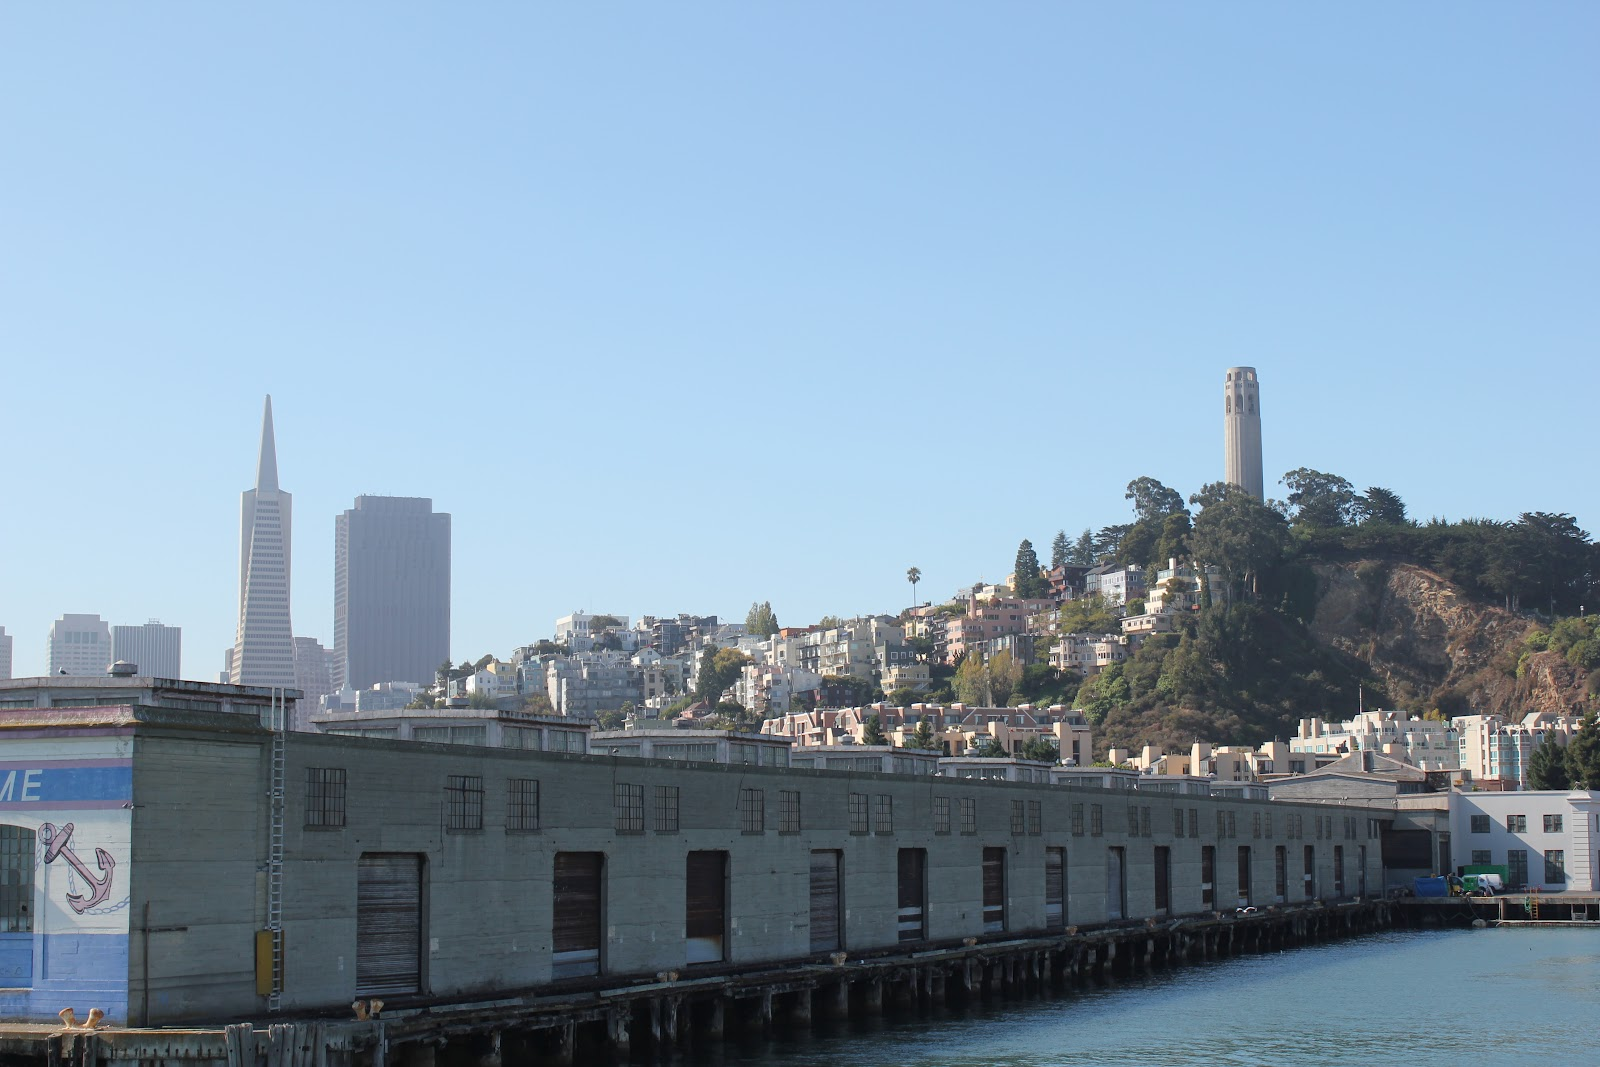 In and Around Town: San Francisco - a Visit to Alcatraz